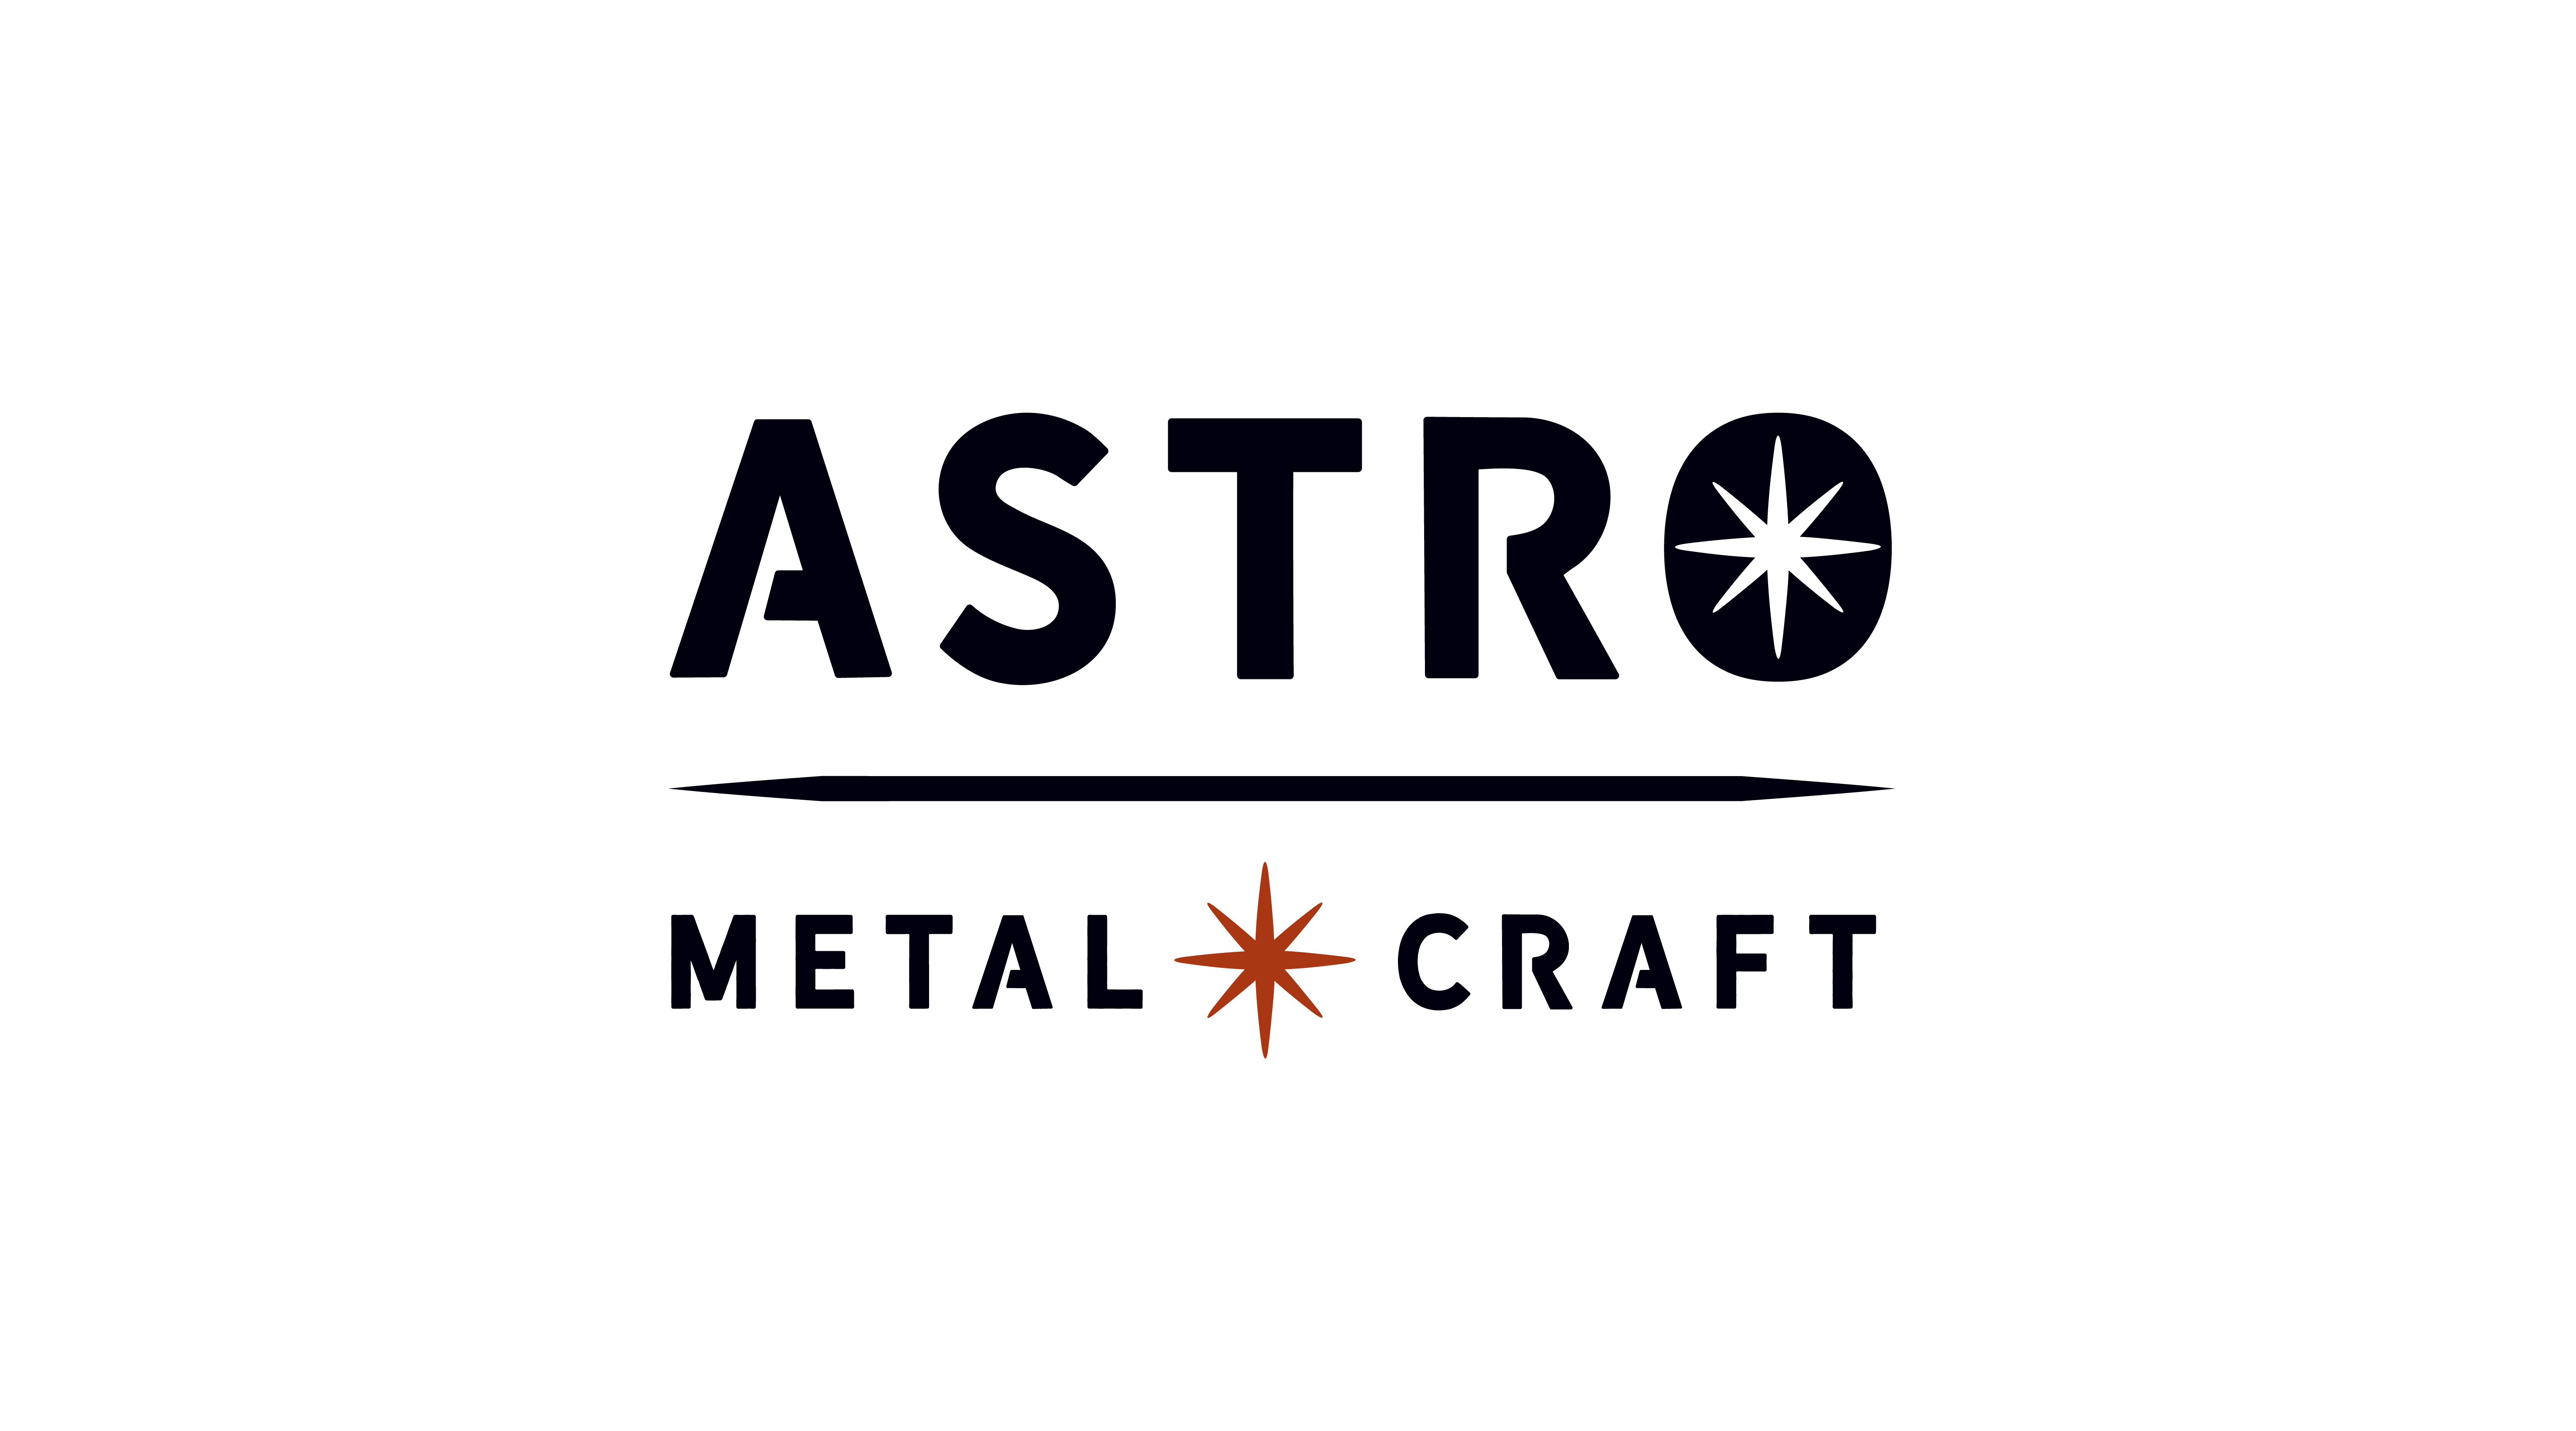 Our new name and logo represent what we do. We weld, laser